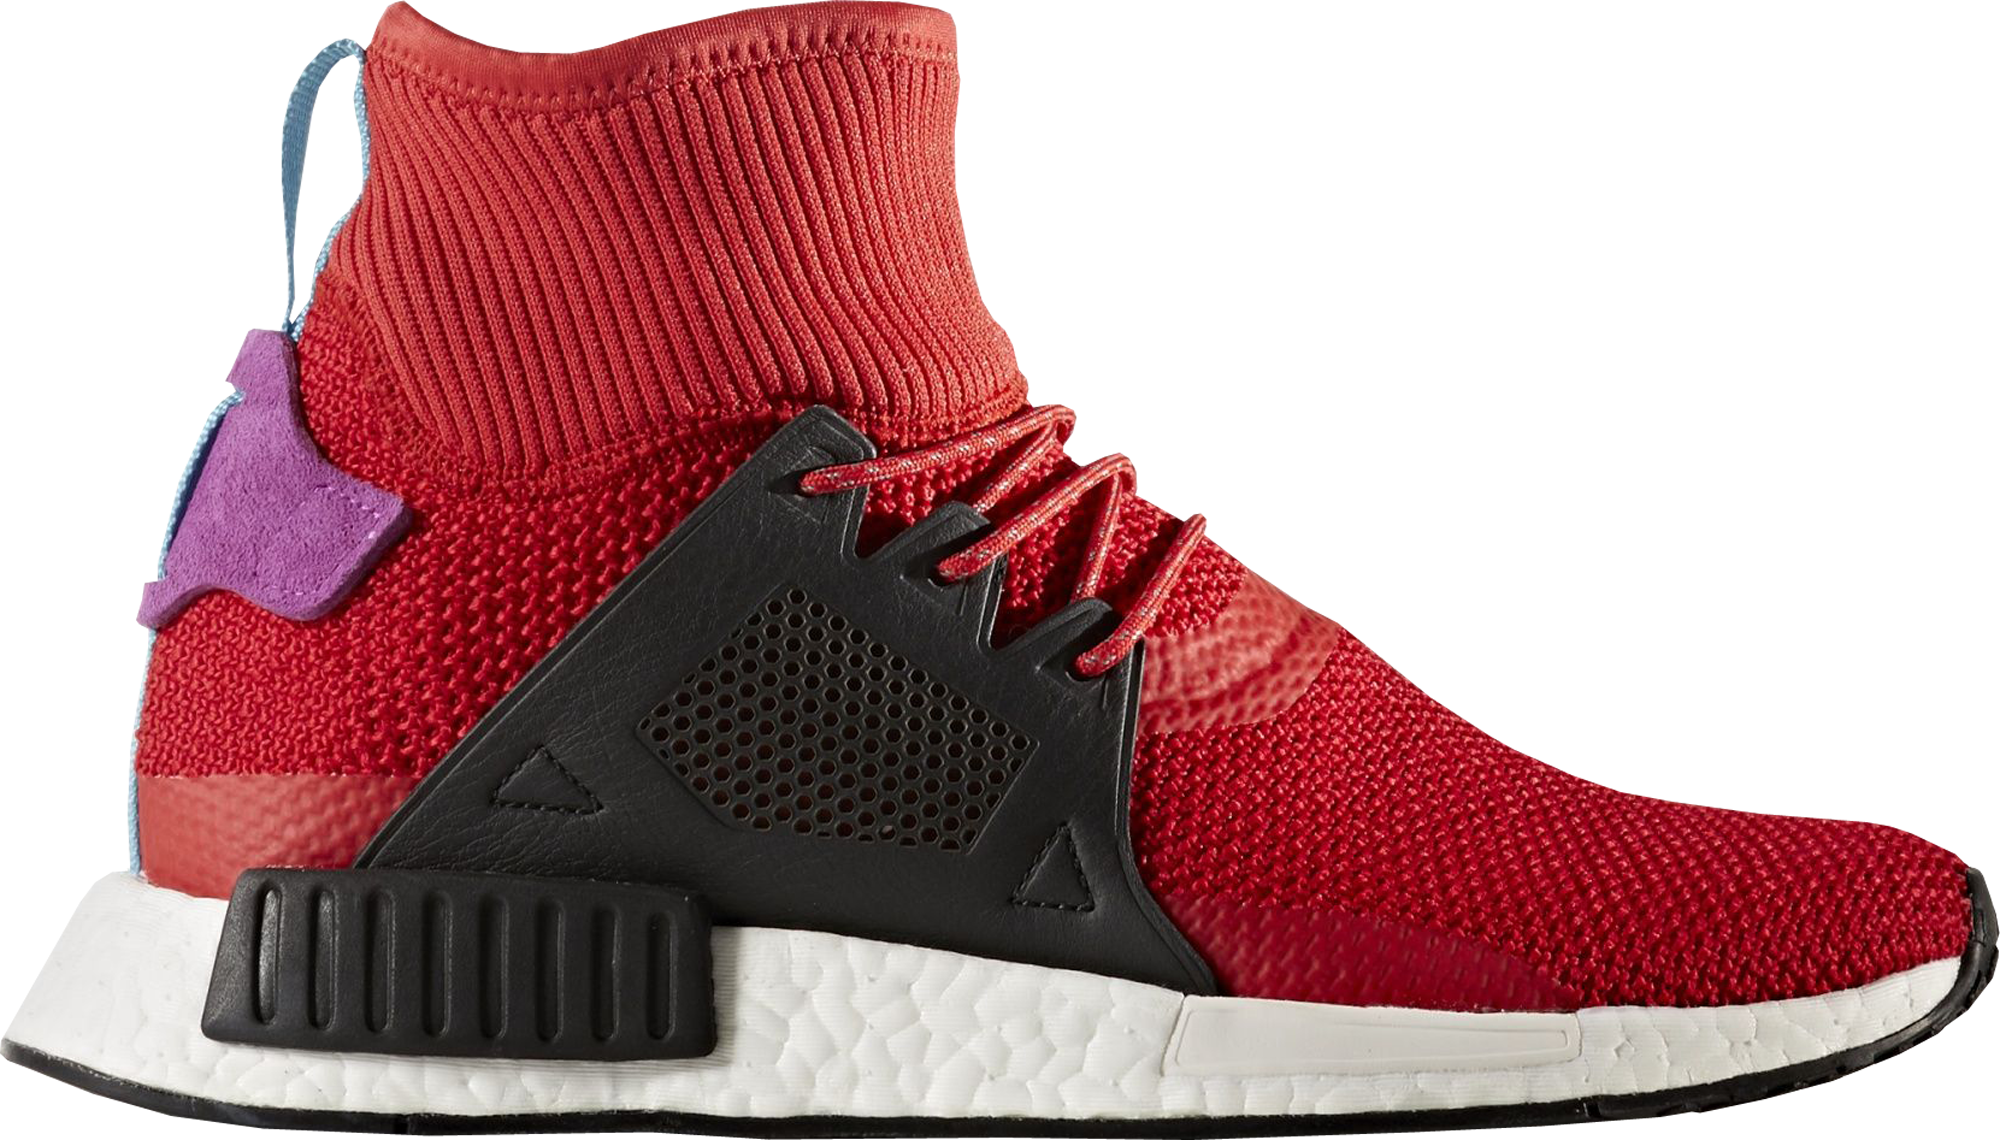 new concept 3a212 03109 adidas NMD XR1 Adventure Pack Scarlet - BZ0632